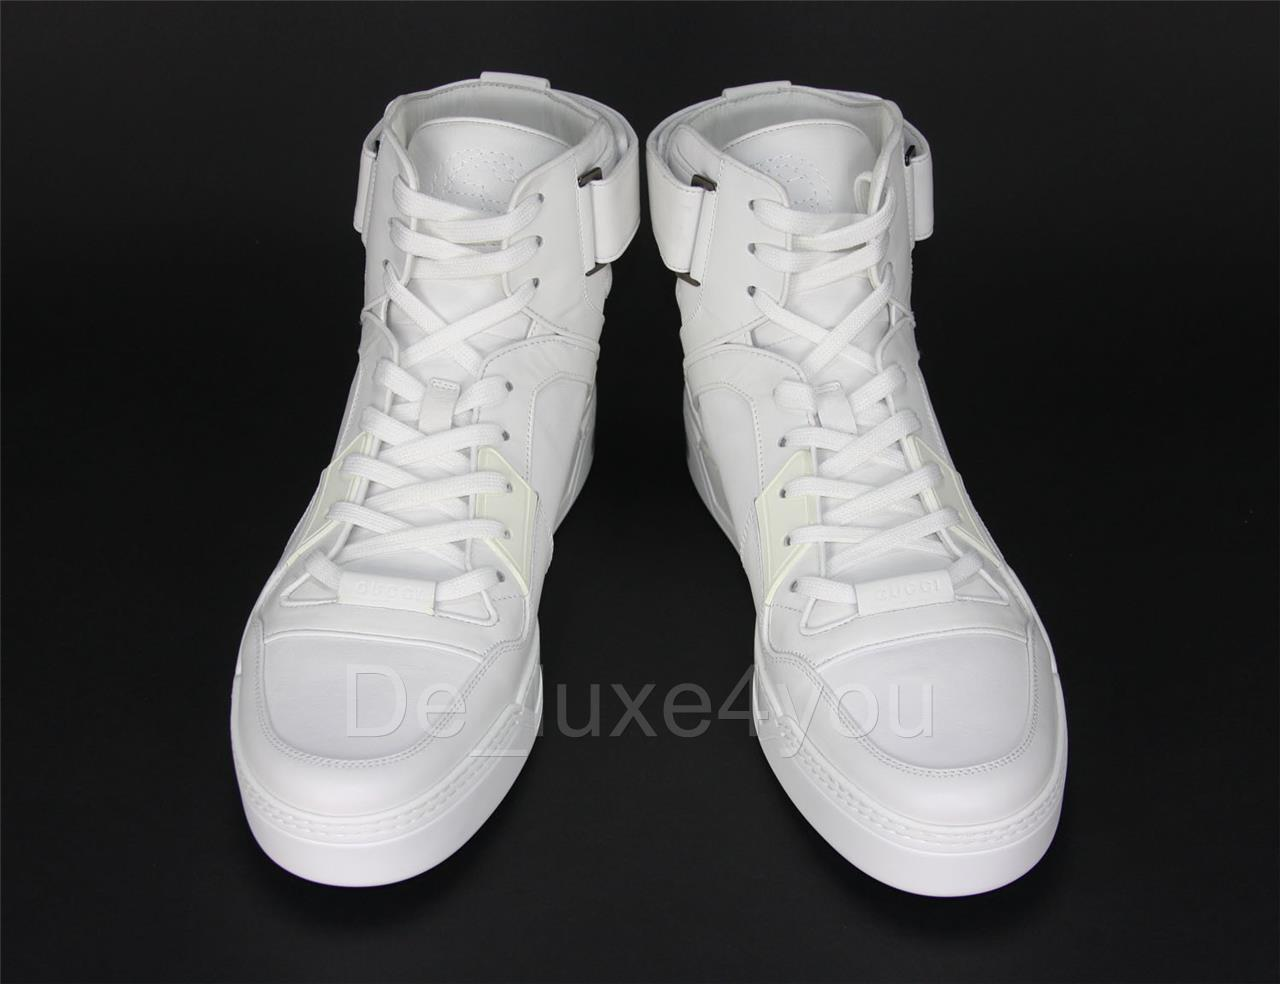 8e410d5c85f New Gucci Men s Classy White Leather High Top Sneakers Shoes GG Logo 11.5 G  - US 12.5 - Italian 46